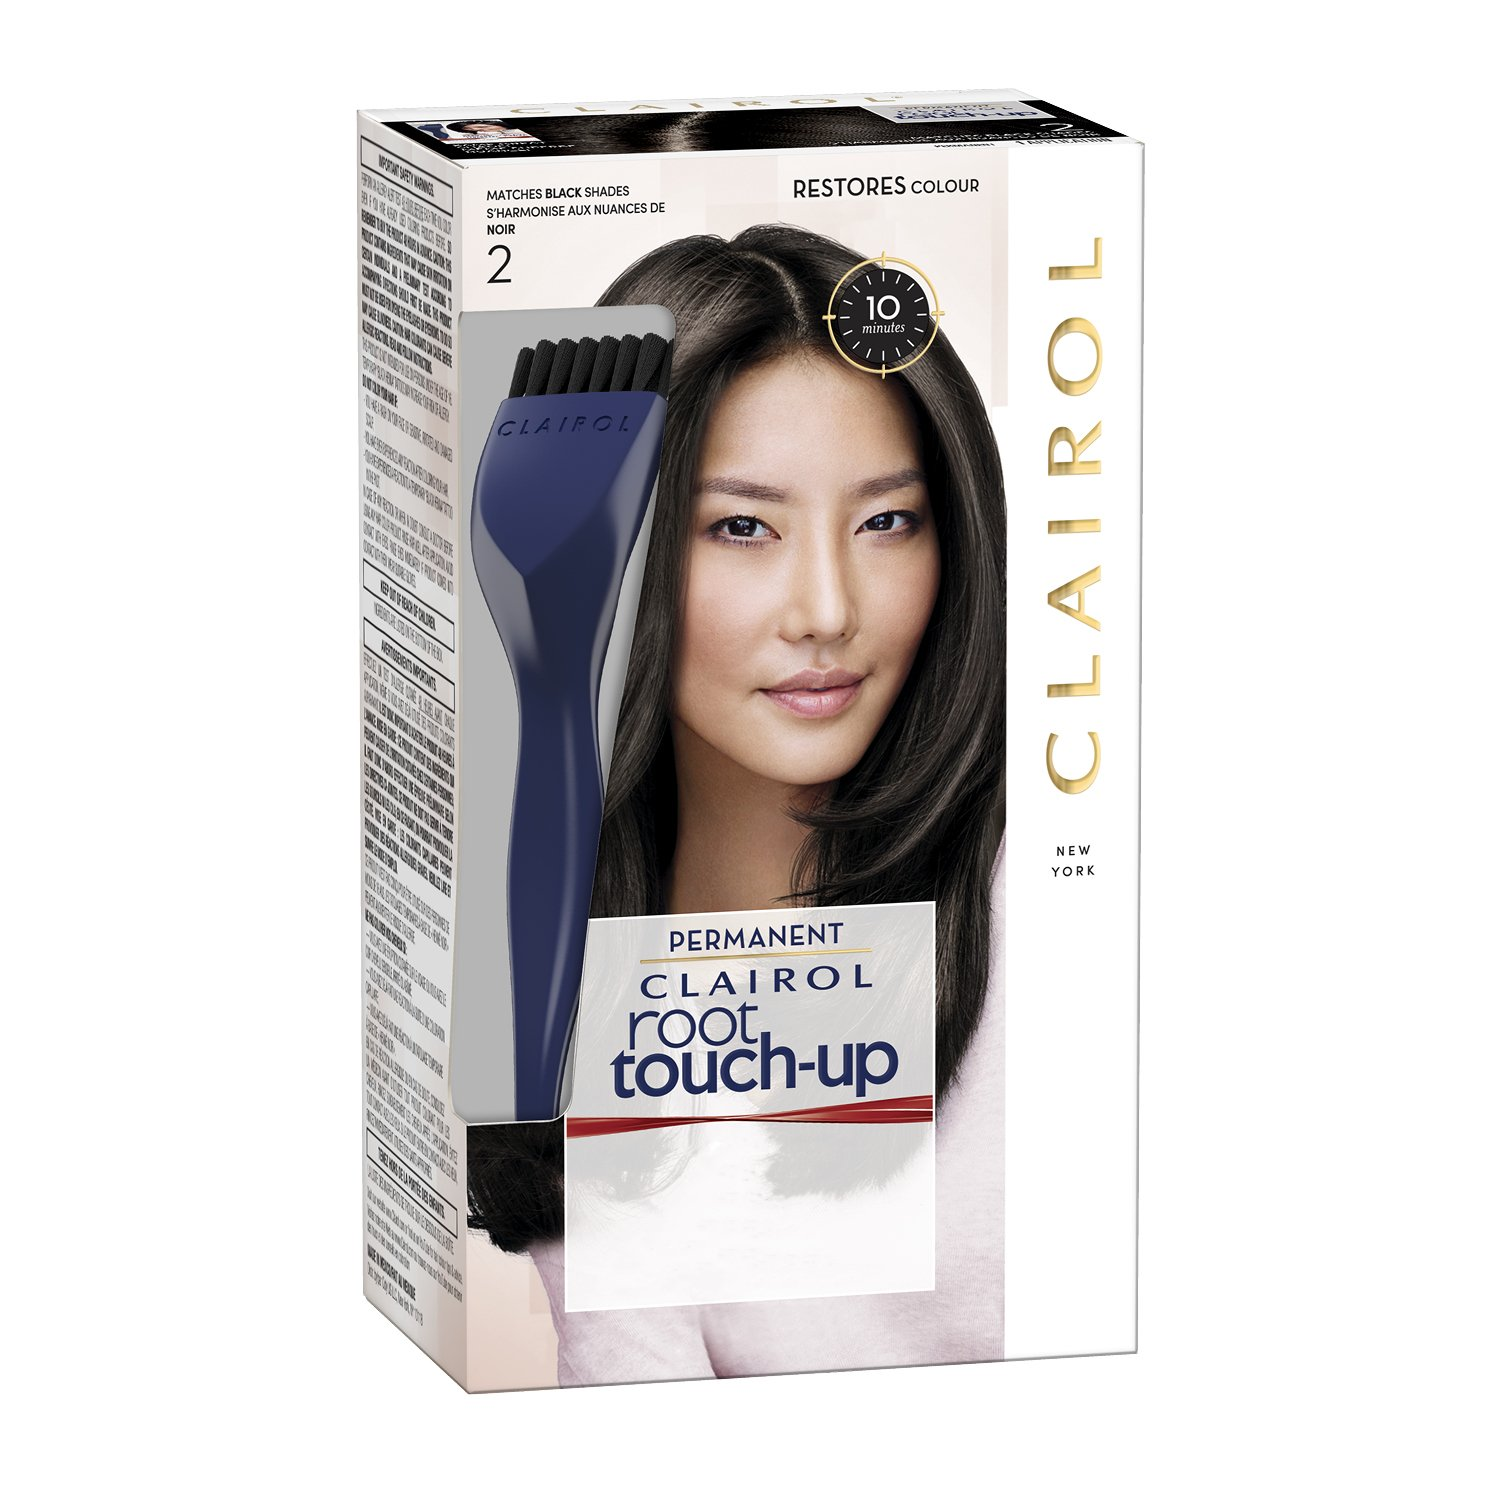 Clairol - Root Touch-up Permanent Hair Color, Black Coty